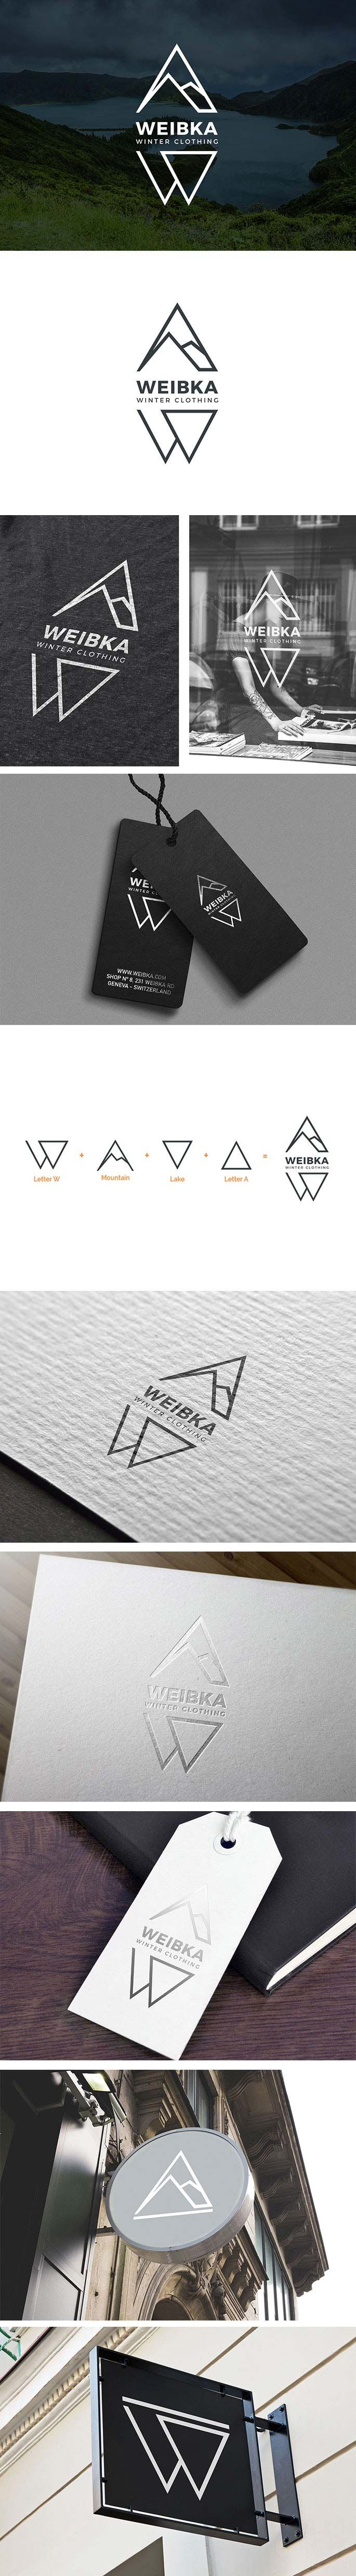 Logo Design Fashion, Clothing & Sport Brand Identity  |  Letter W, Letter A, Geometric, Triangle, mountain, lake, mark, branding  |  Valhalla Creative Design, Perth